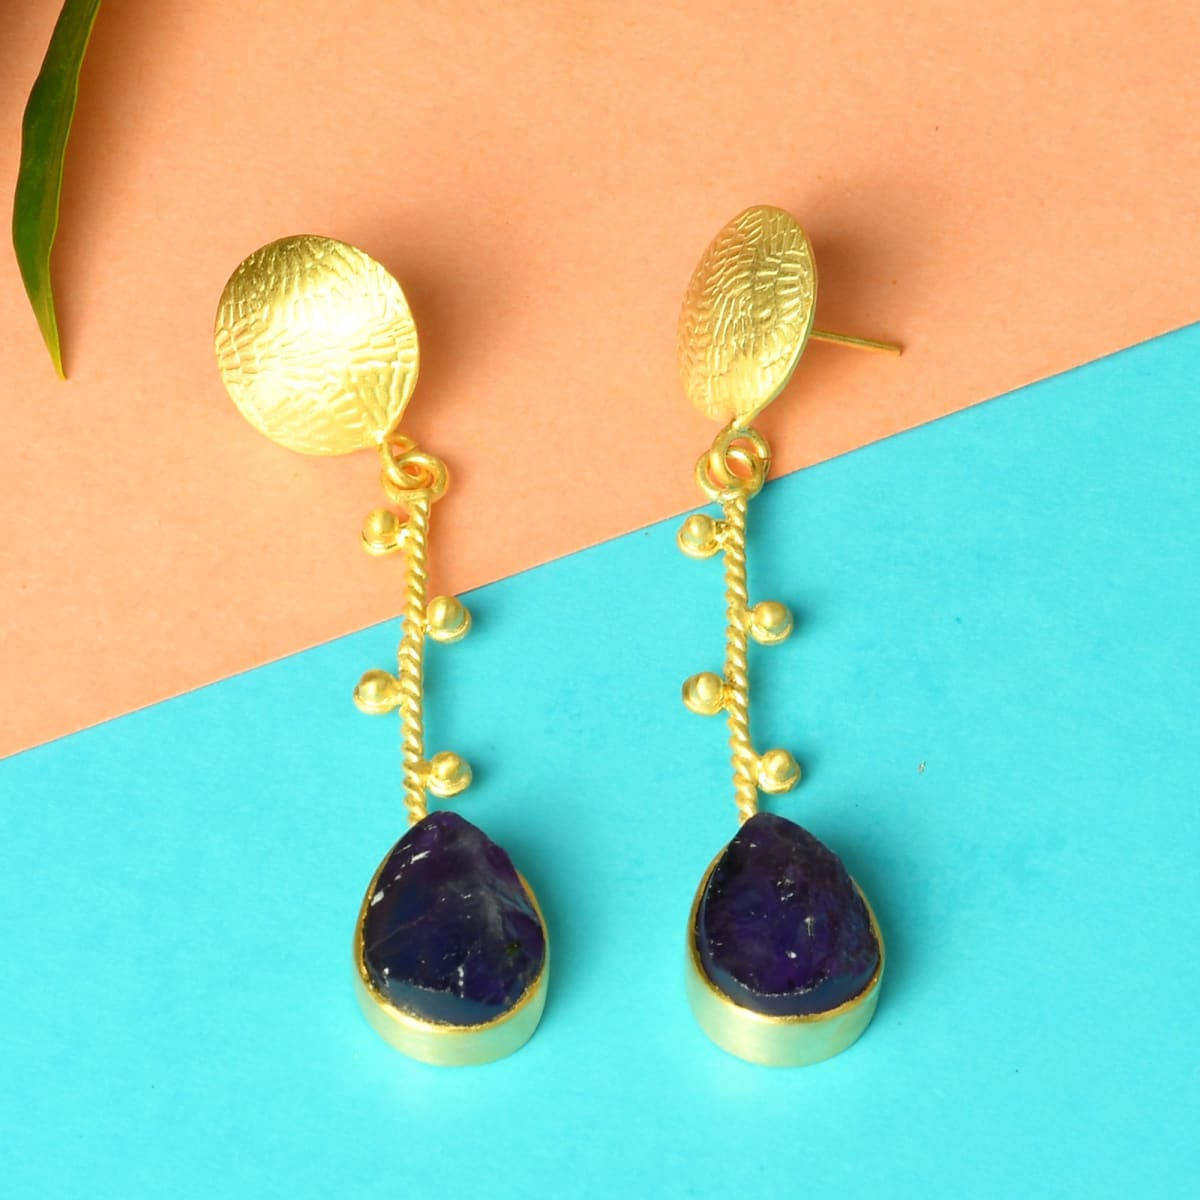 FREE SHIPPING!! Vintage Beautiful Artisan Crafted Drop Earrings With Purple Transparent Stones